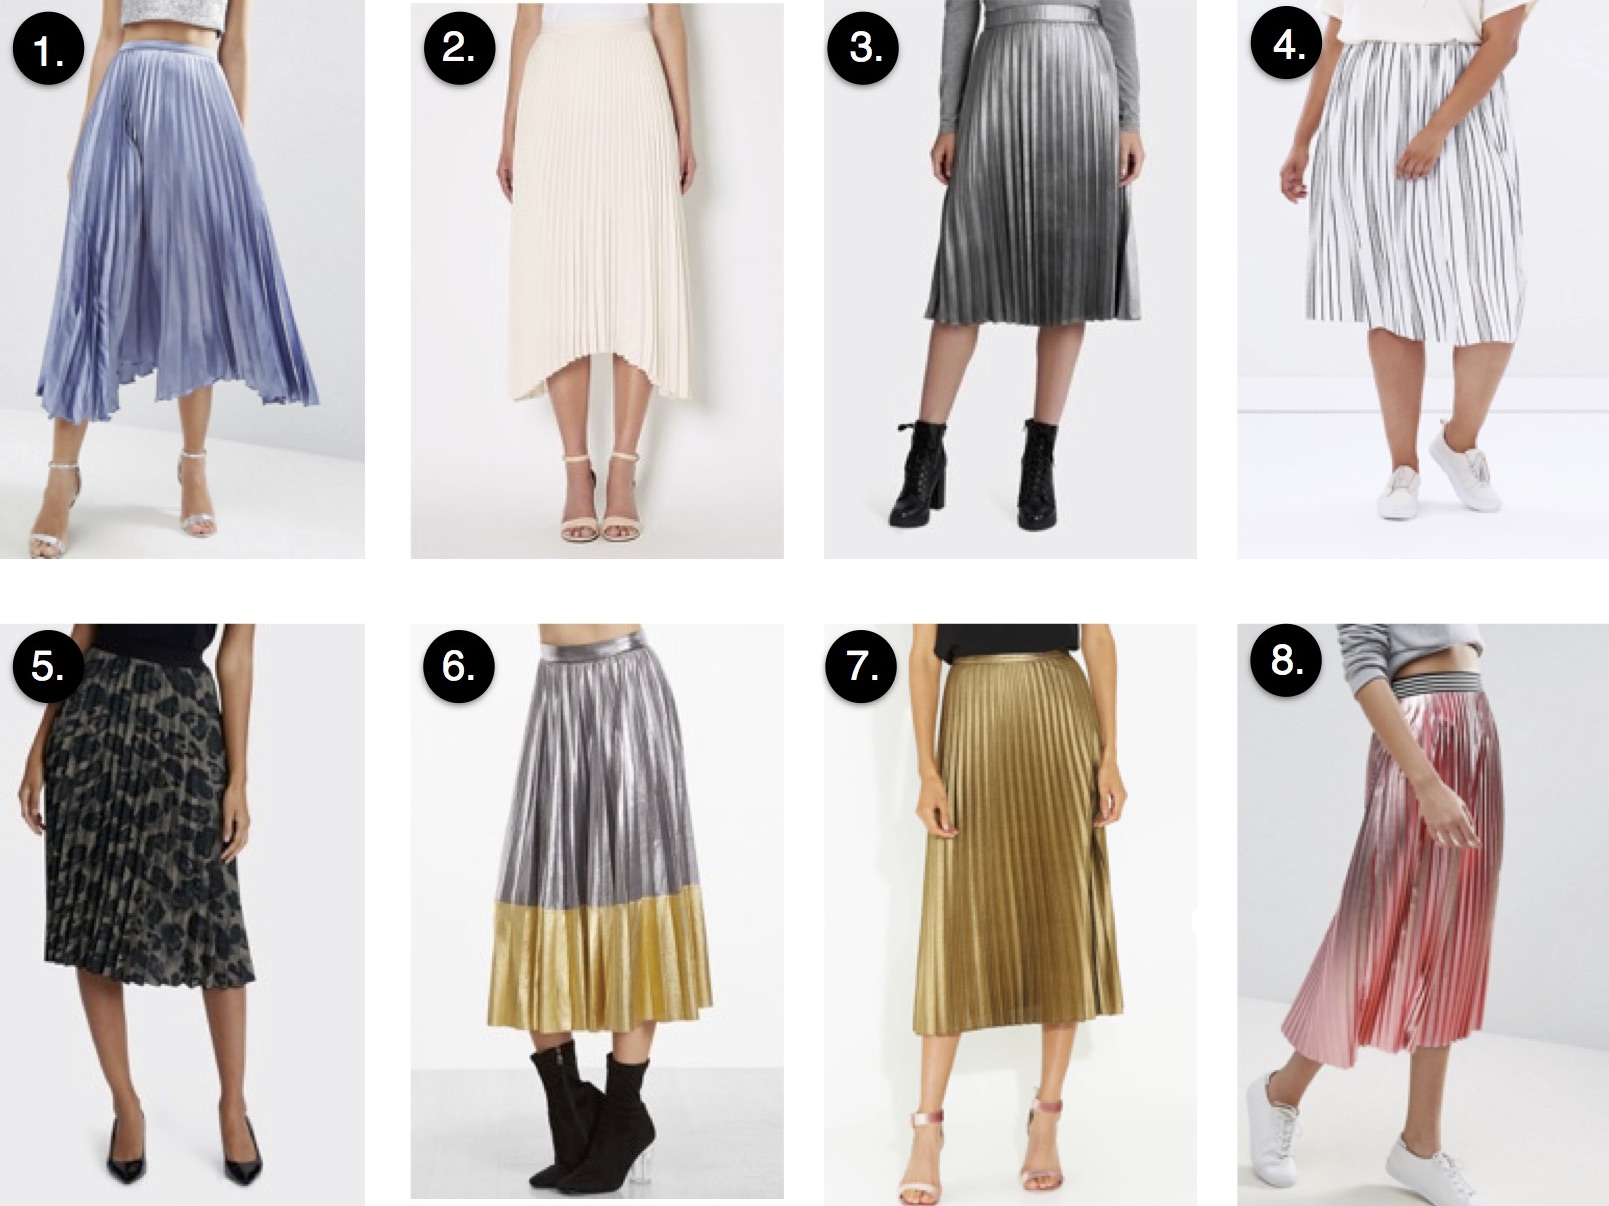 7f81f96f9b Atmos & Here Samantha Pleat Skirt, $59.95 | 5. Jane Lamerton Animal Print Pleated  Skirt, $$129.95 | 6. SheIn Metallic Contrast Pleated Midi Skirt, ...